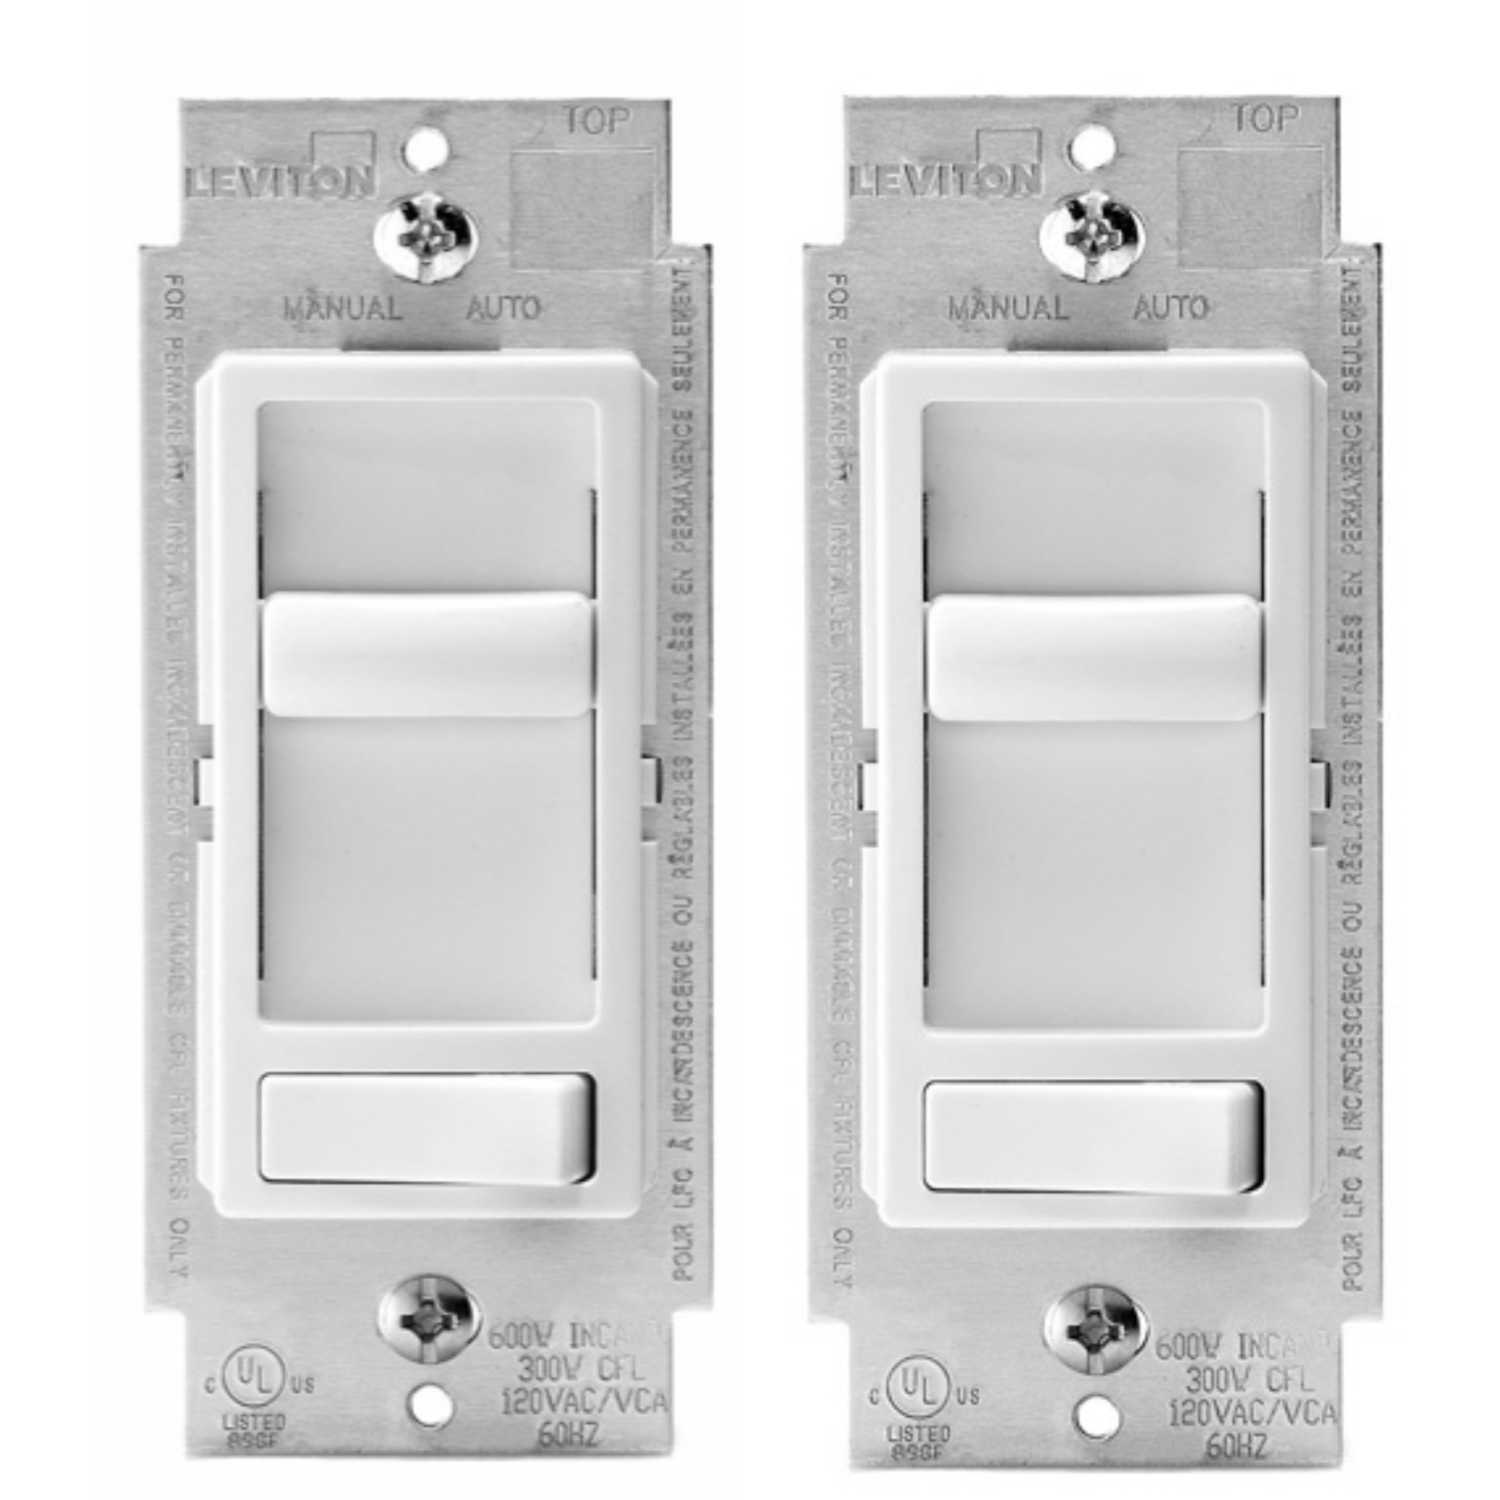 Leviton 6674-P0W SureSlide Universal 150-Watt LED and CFL/600-Watt Incandescent Dimmer, White, 2 Pack